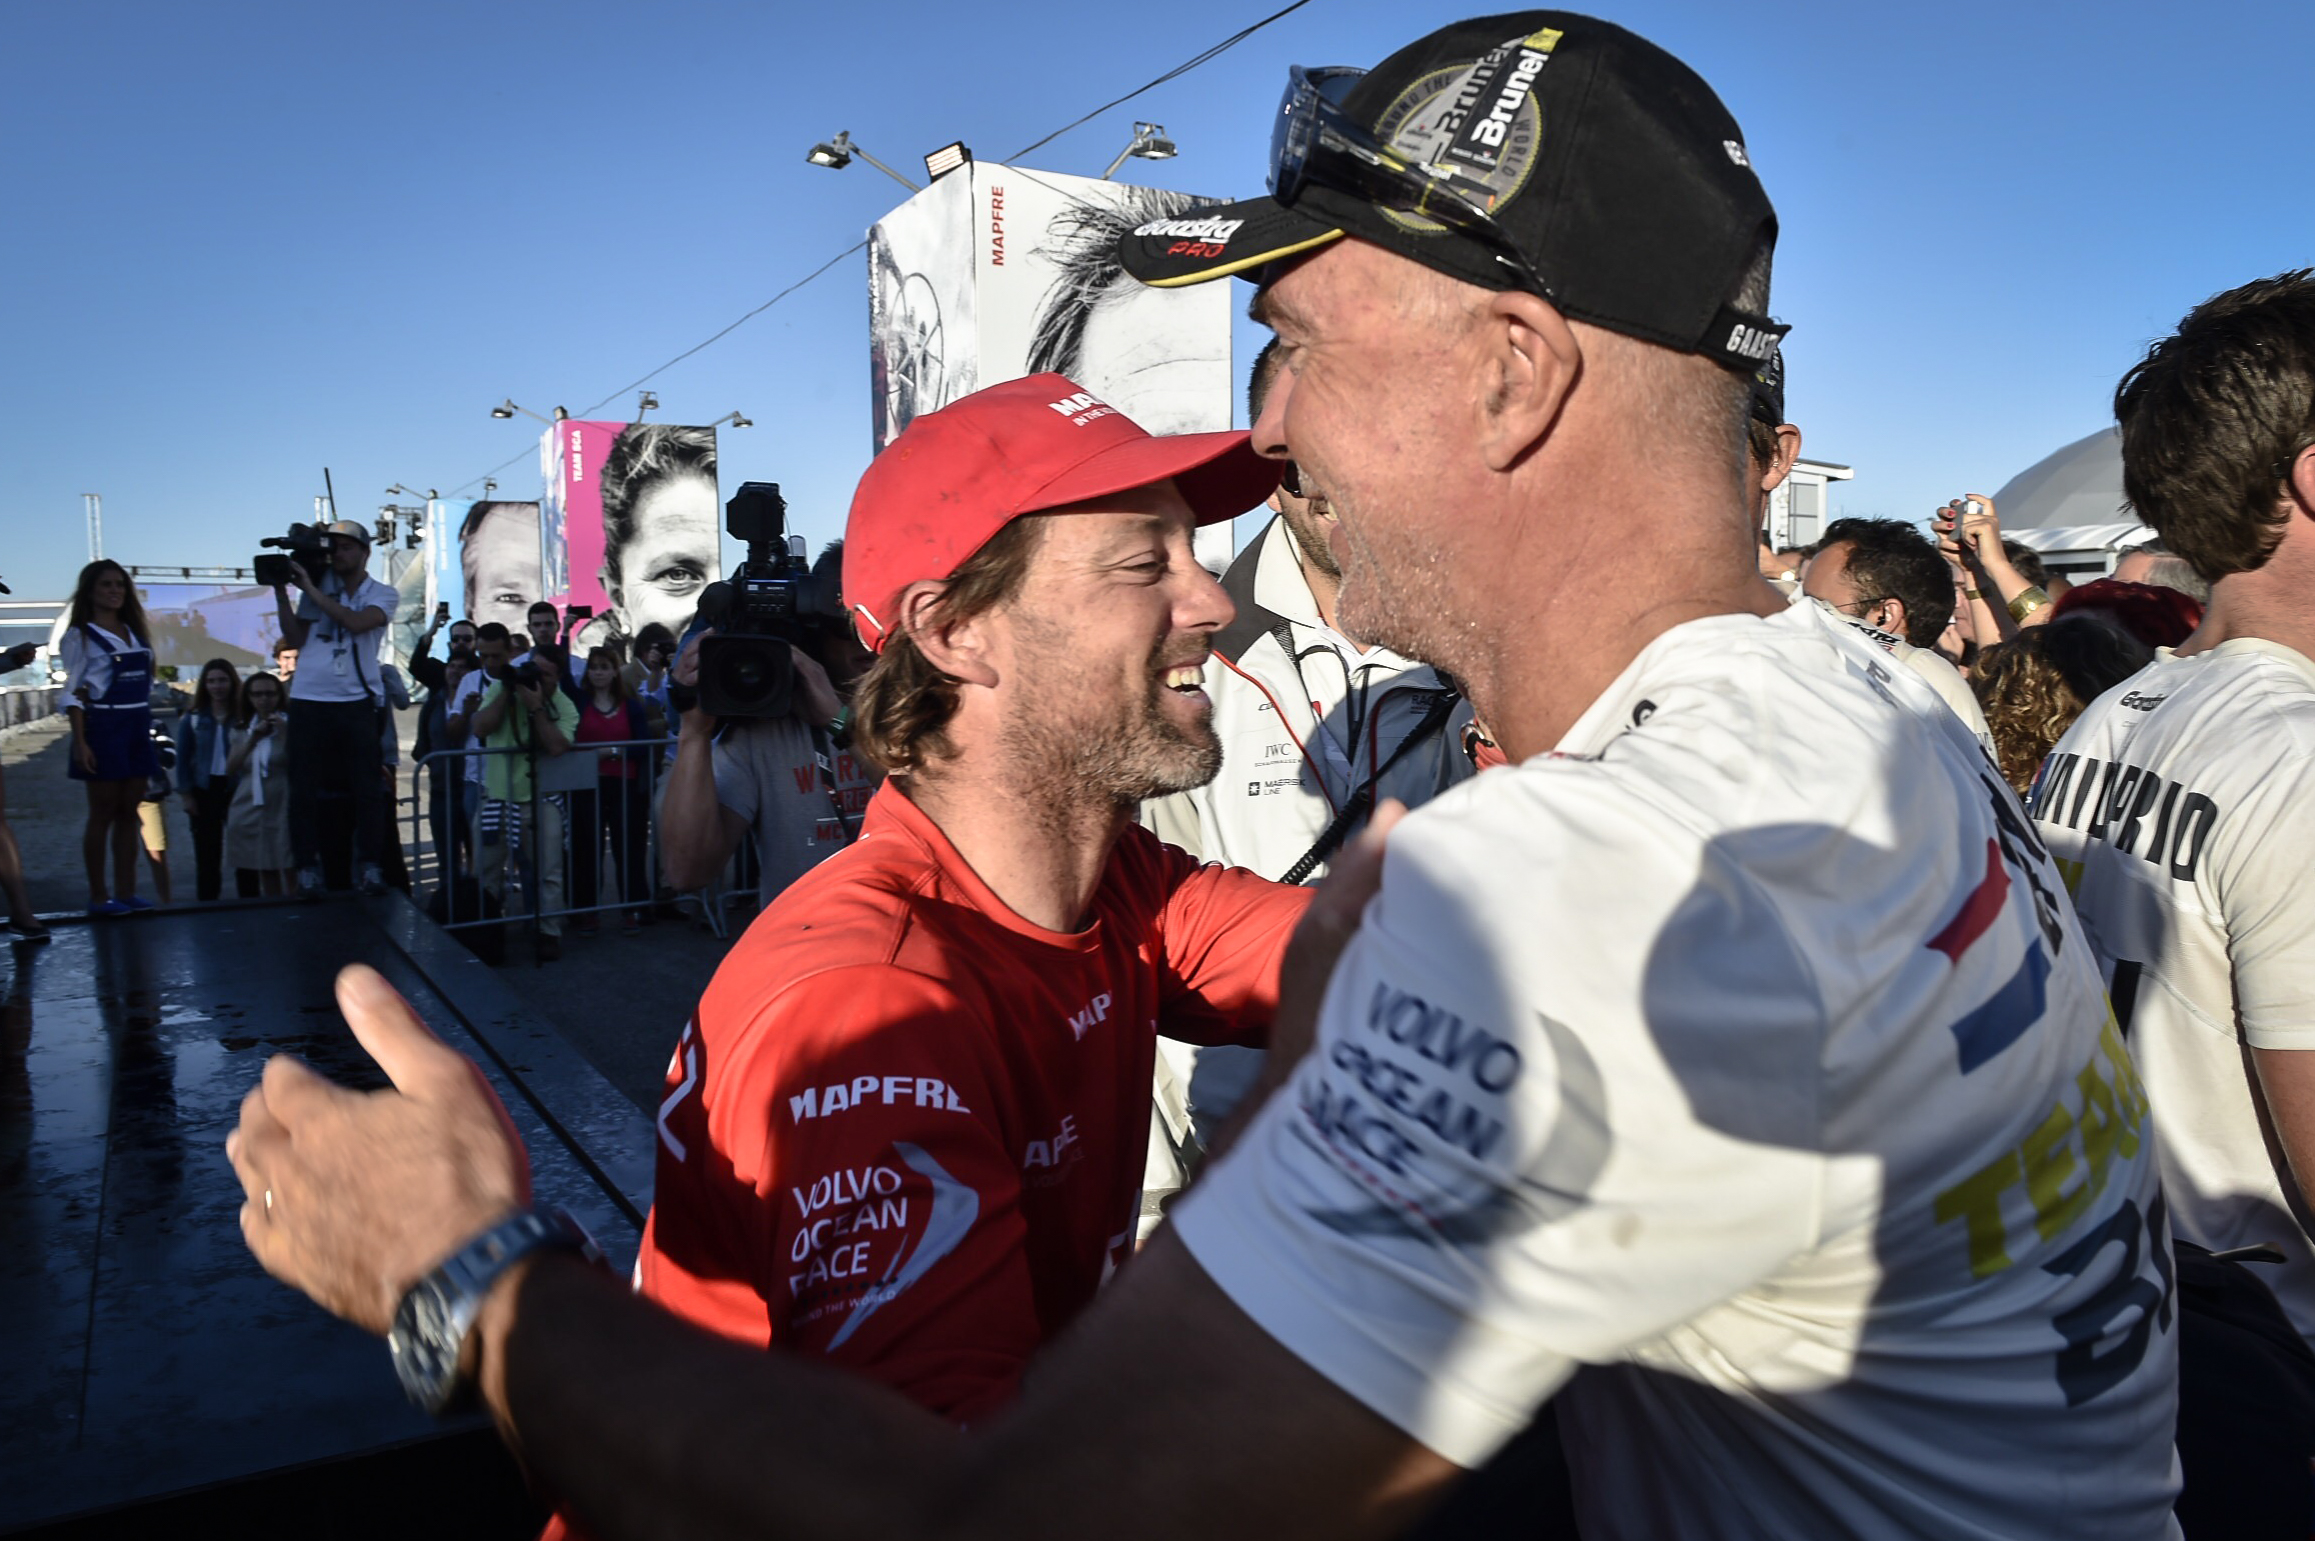 . MAPFRE arrives to Lisbon in second position after Leg 7 from Newport. MAPFRE Skipper Iker Martinez and Team Brunel Skipper Bouwe Bekking congratulate each other on stage. (Photo by Ricardo Pinto / Volvo Ocean Race )